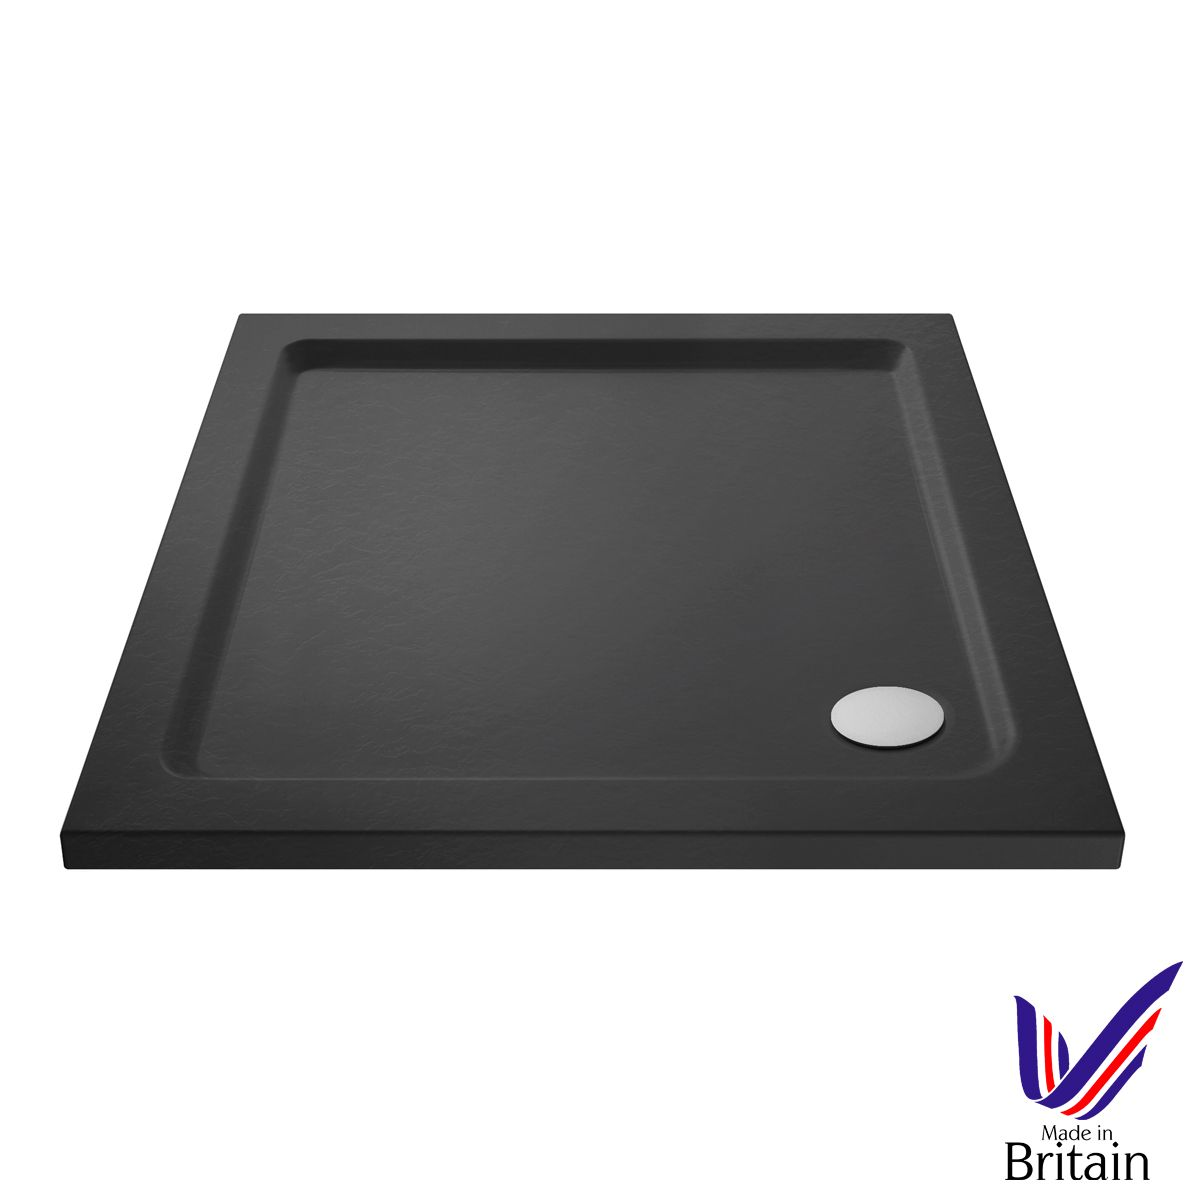 900 x 900 Shower Tray Slate Grey Square Low Profile by Pearlstone